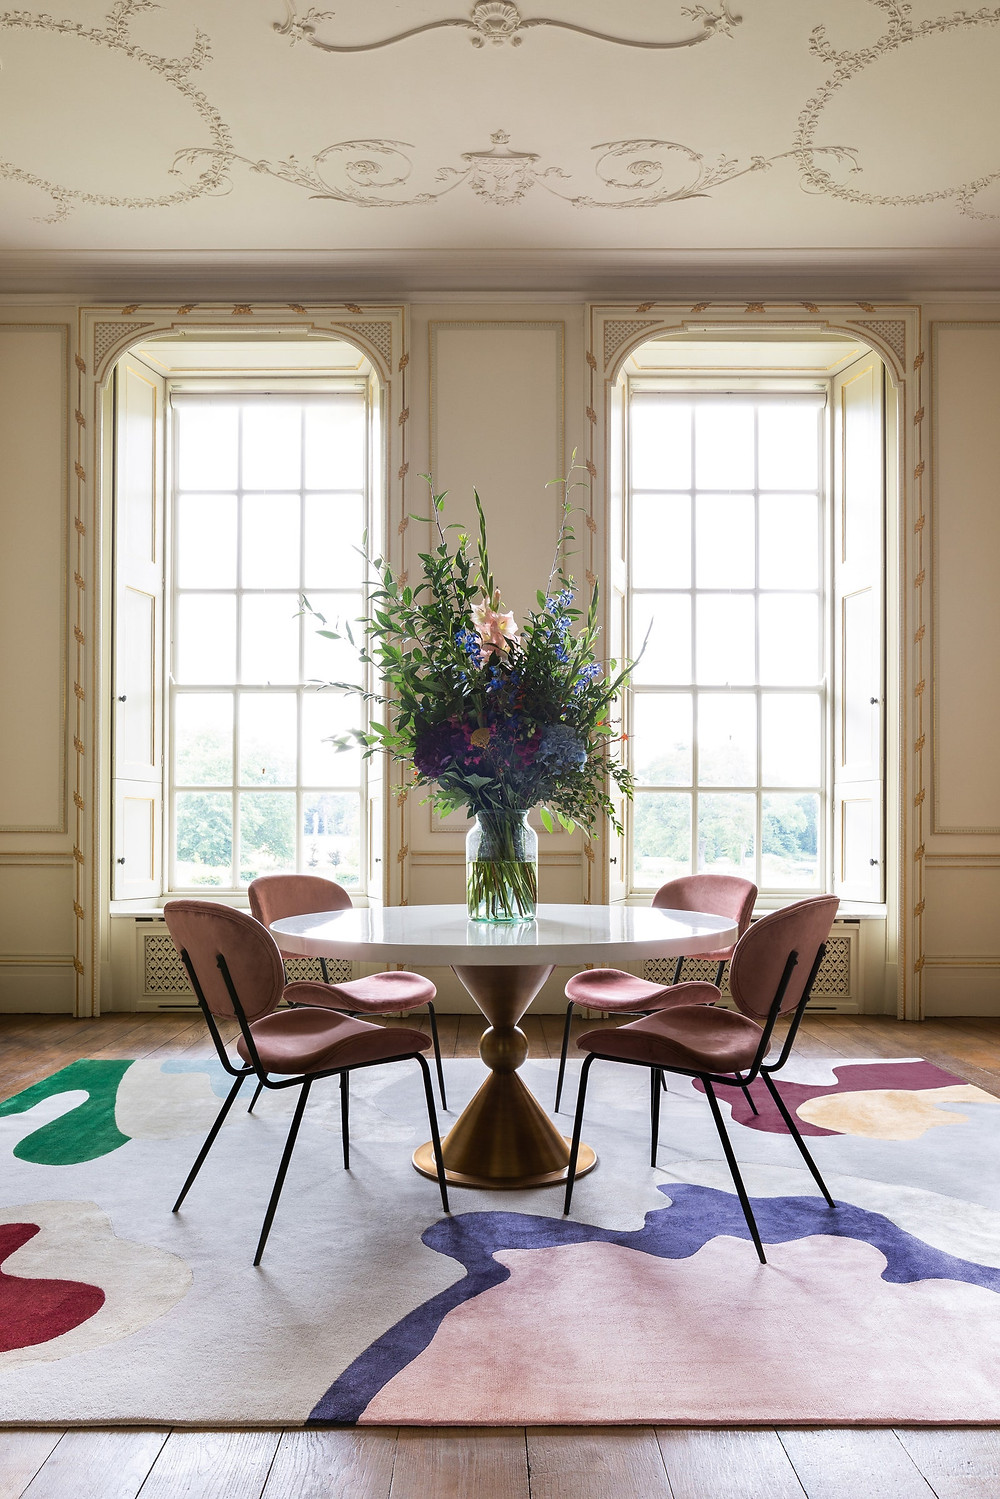 abstract rug by Mary Katrantzou in a living room using Jonathan Adler furniture